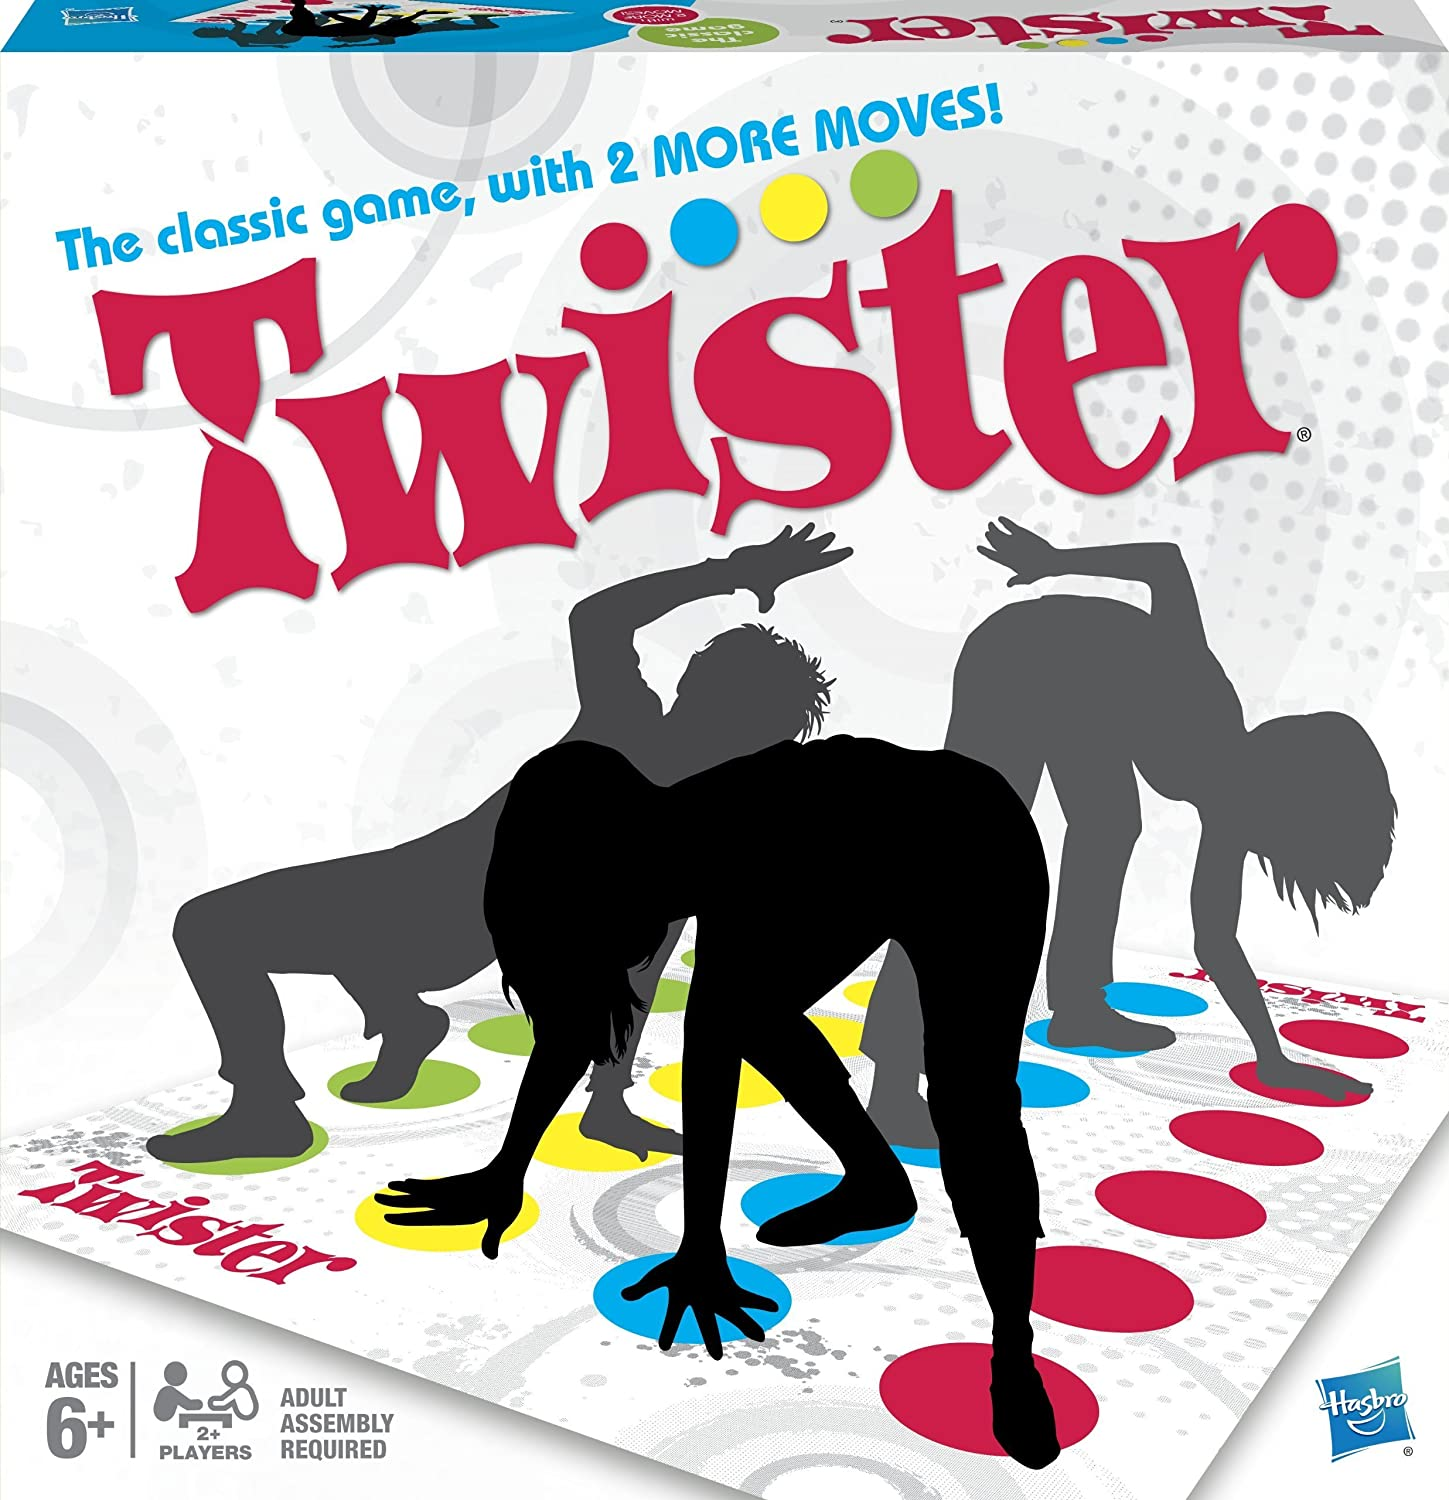 image of the Twister game set in a box